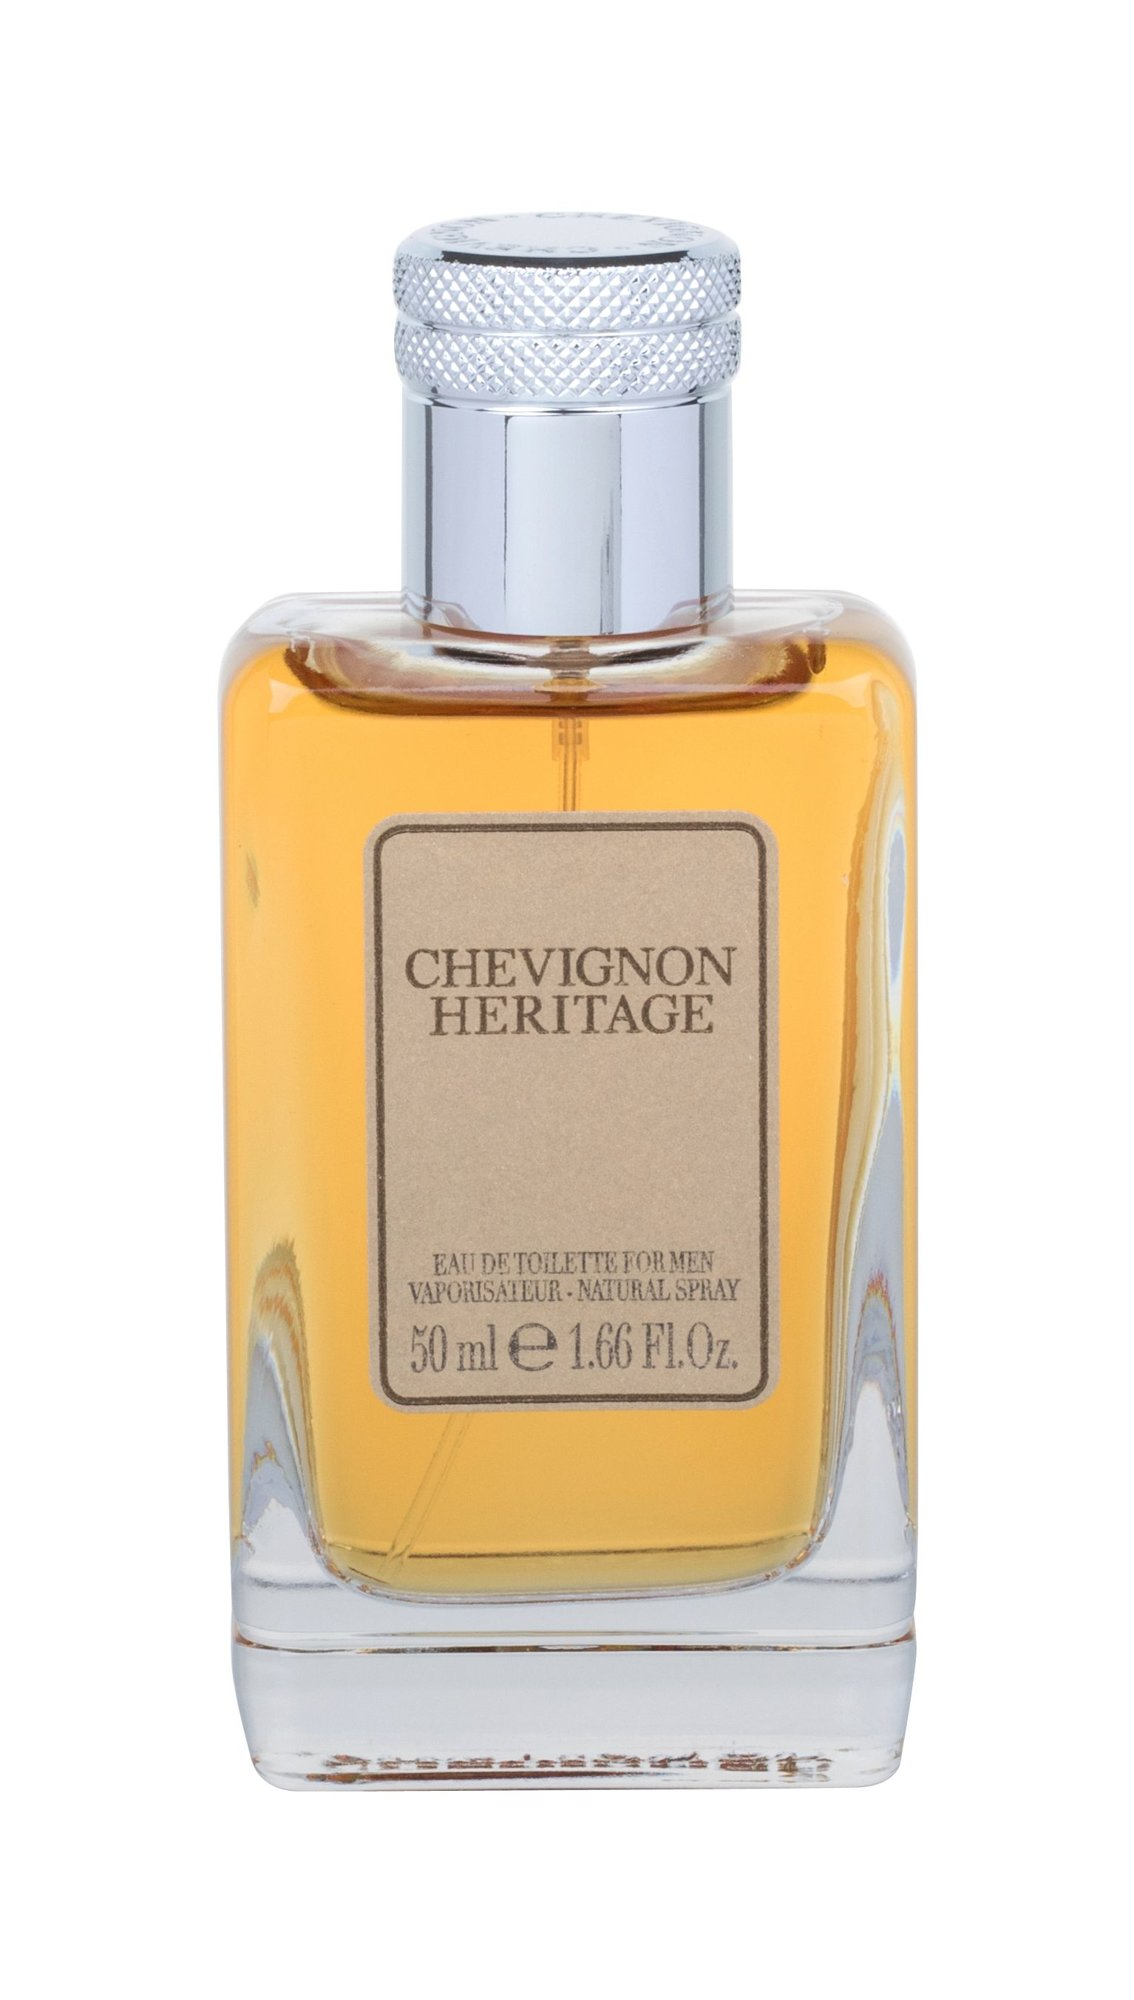 Chevignon Heritage EDT 50ml